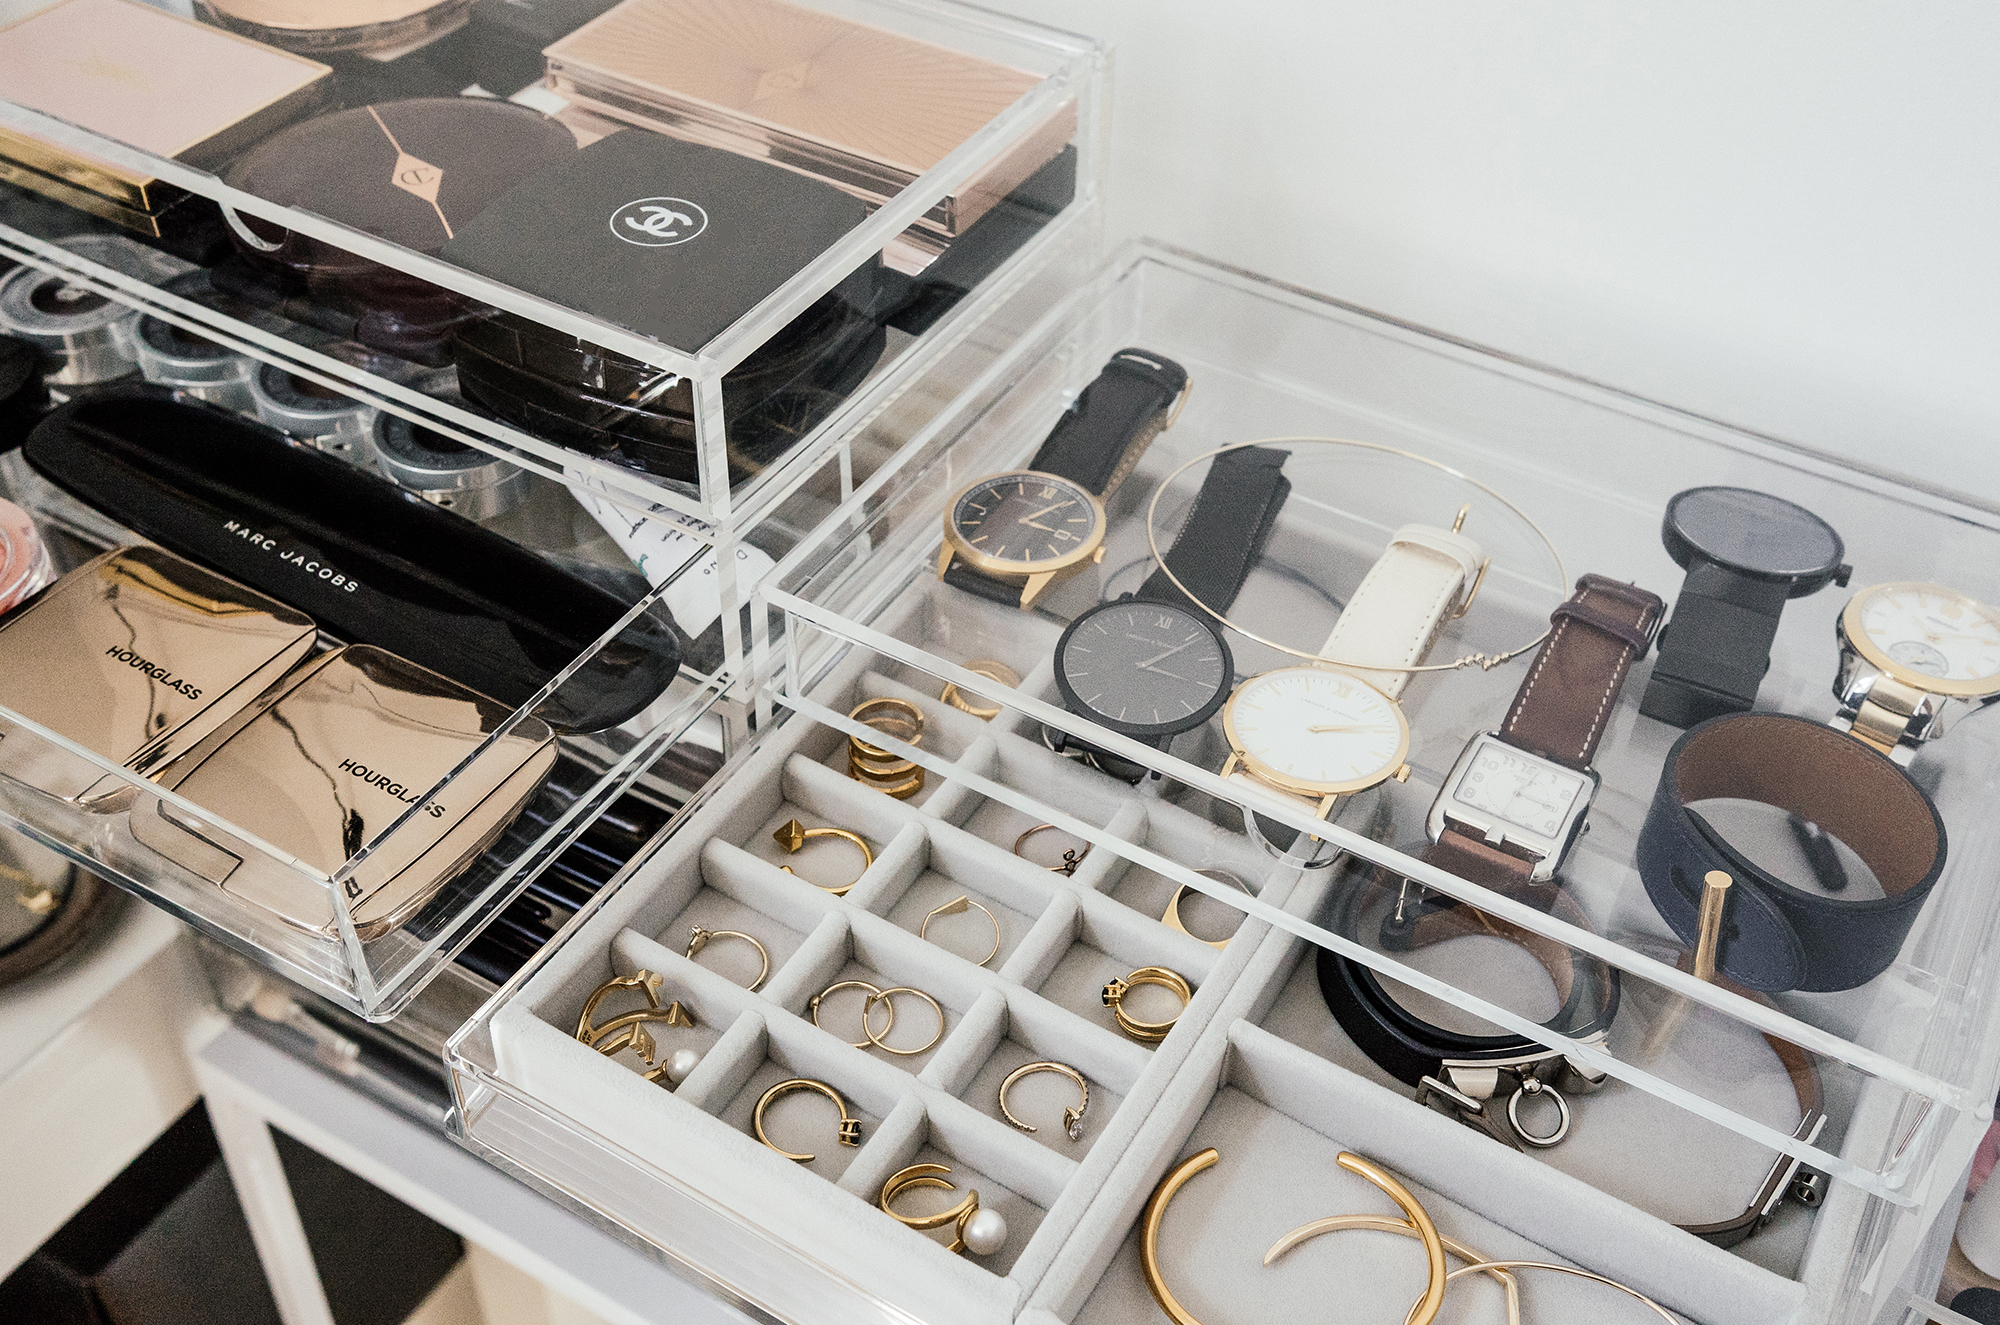 Larsson & Jennings Watches ,  Hermes Watch  and Bracelets,  Movado Watches ,  Kat Kim New York Rings and Bracelet ,  Jennie Kwon Bracelet ,  AVEC New York Rings ,  Euna Joyce Rings